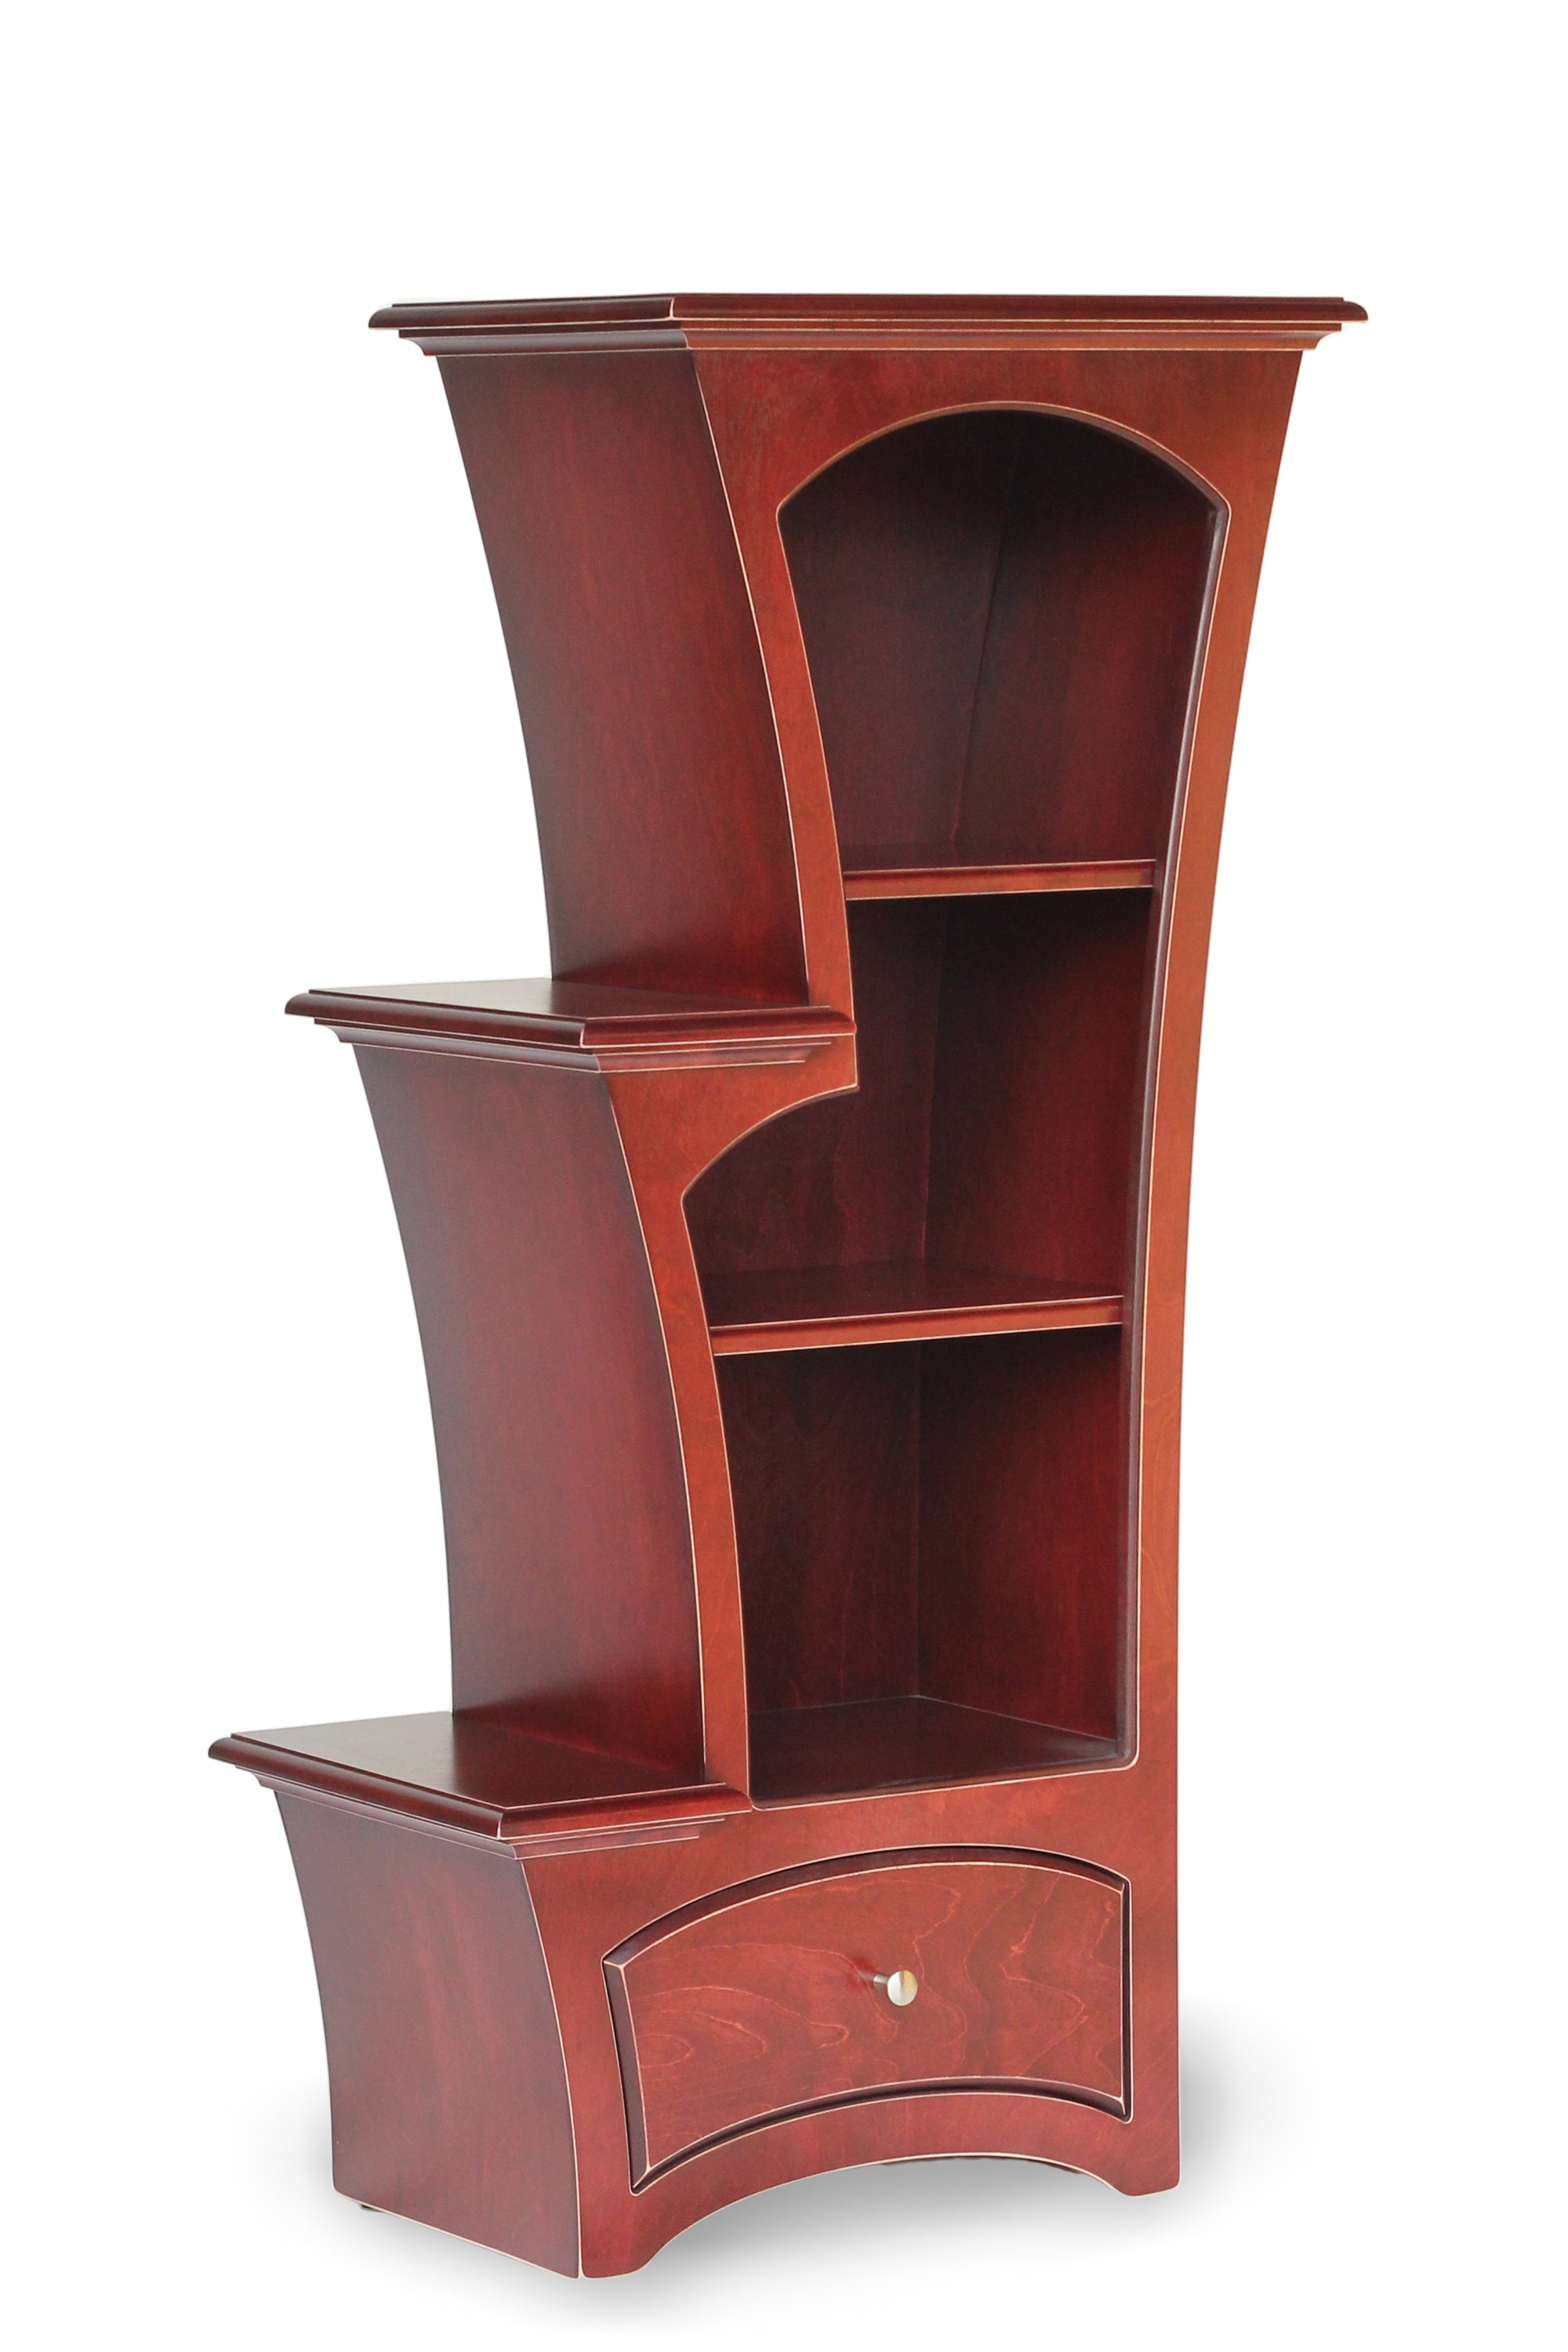 Elegant Bookcase No.7 In Redwood Stain By Dust Furniture